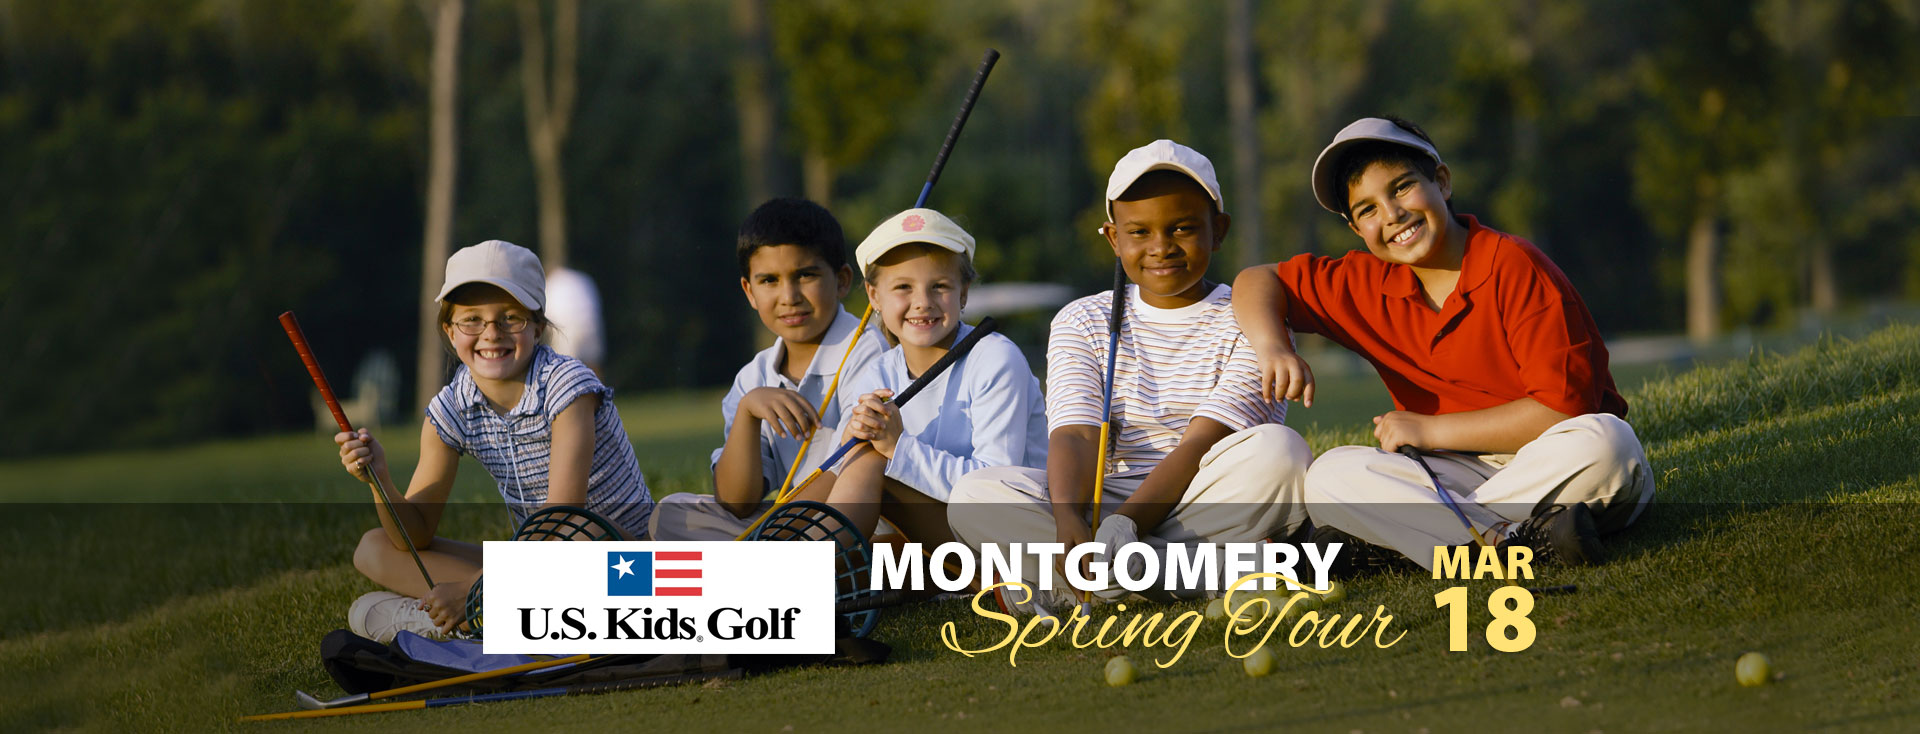 US Golf Kids - Montgomery Spring Tour